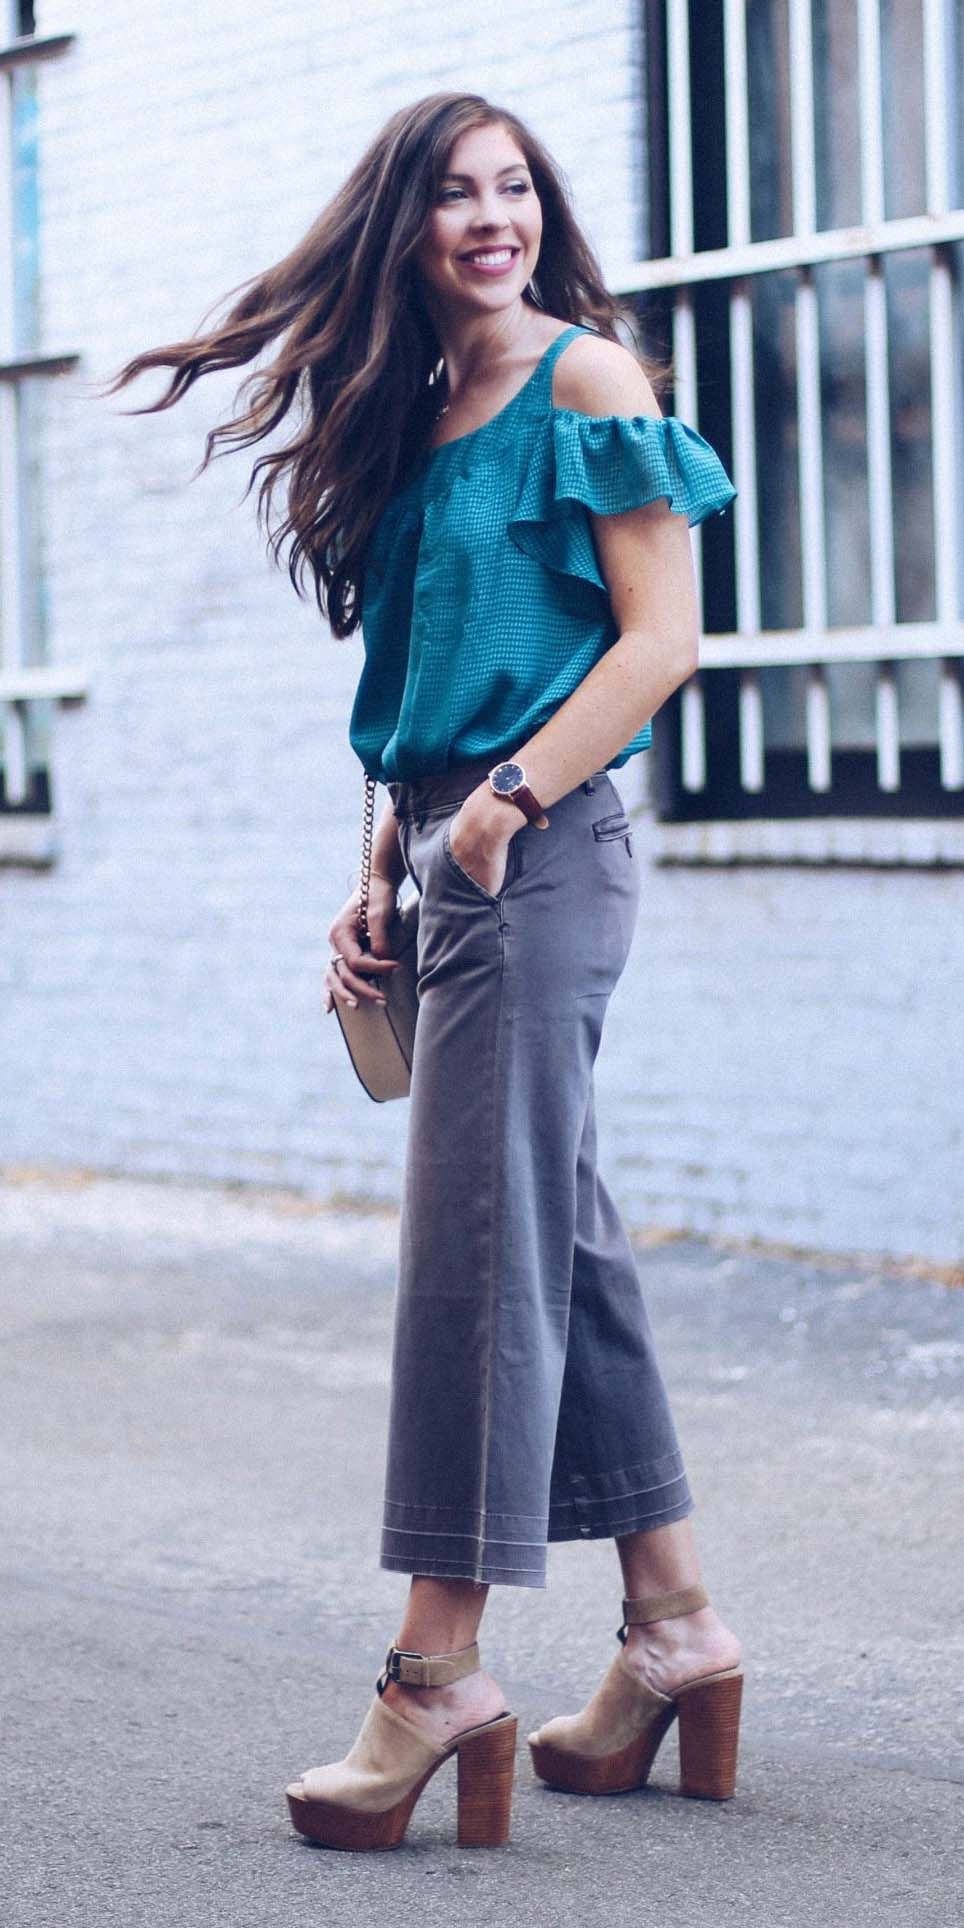 grayd-culottes-pants-blue-med-top-blouse-offshoulder-tan-shoe-sandalh-platforms-spring-summer-hairr-dinner.jpg